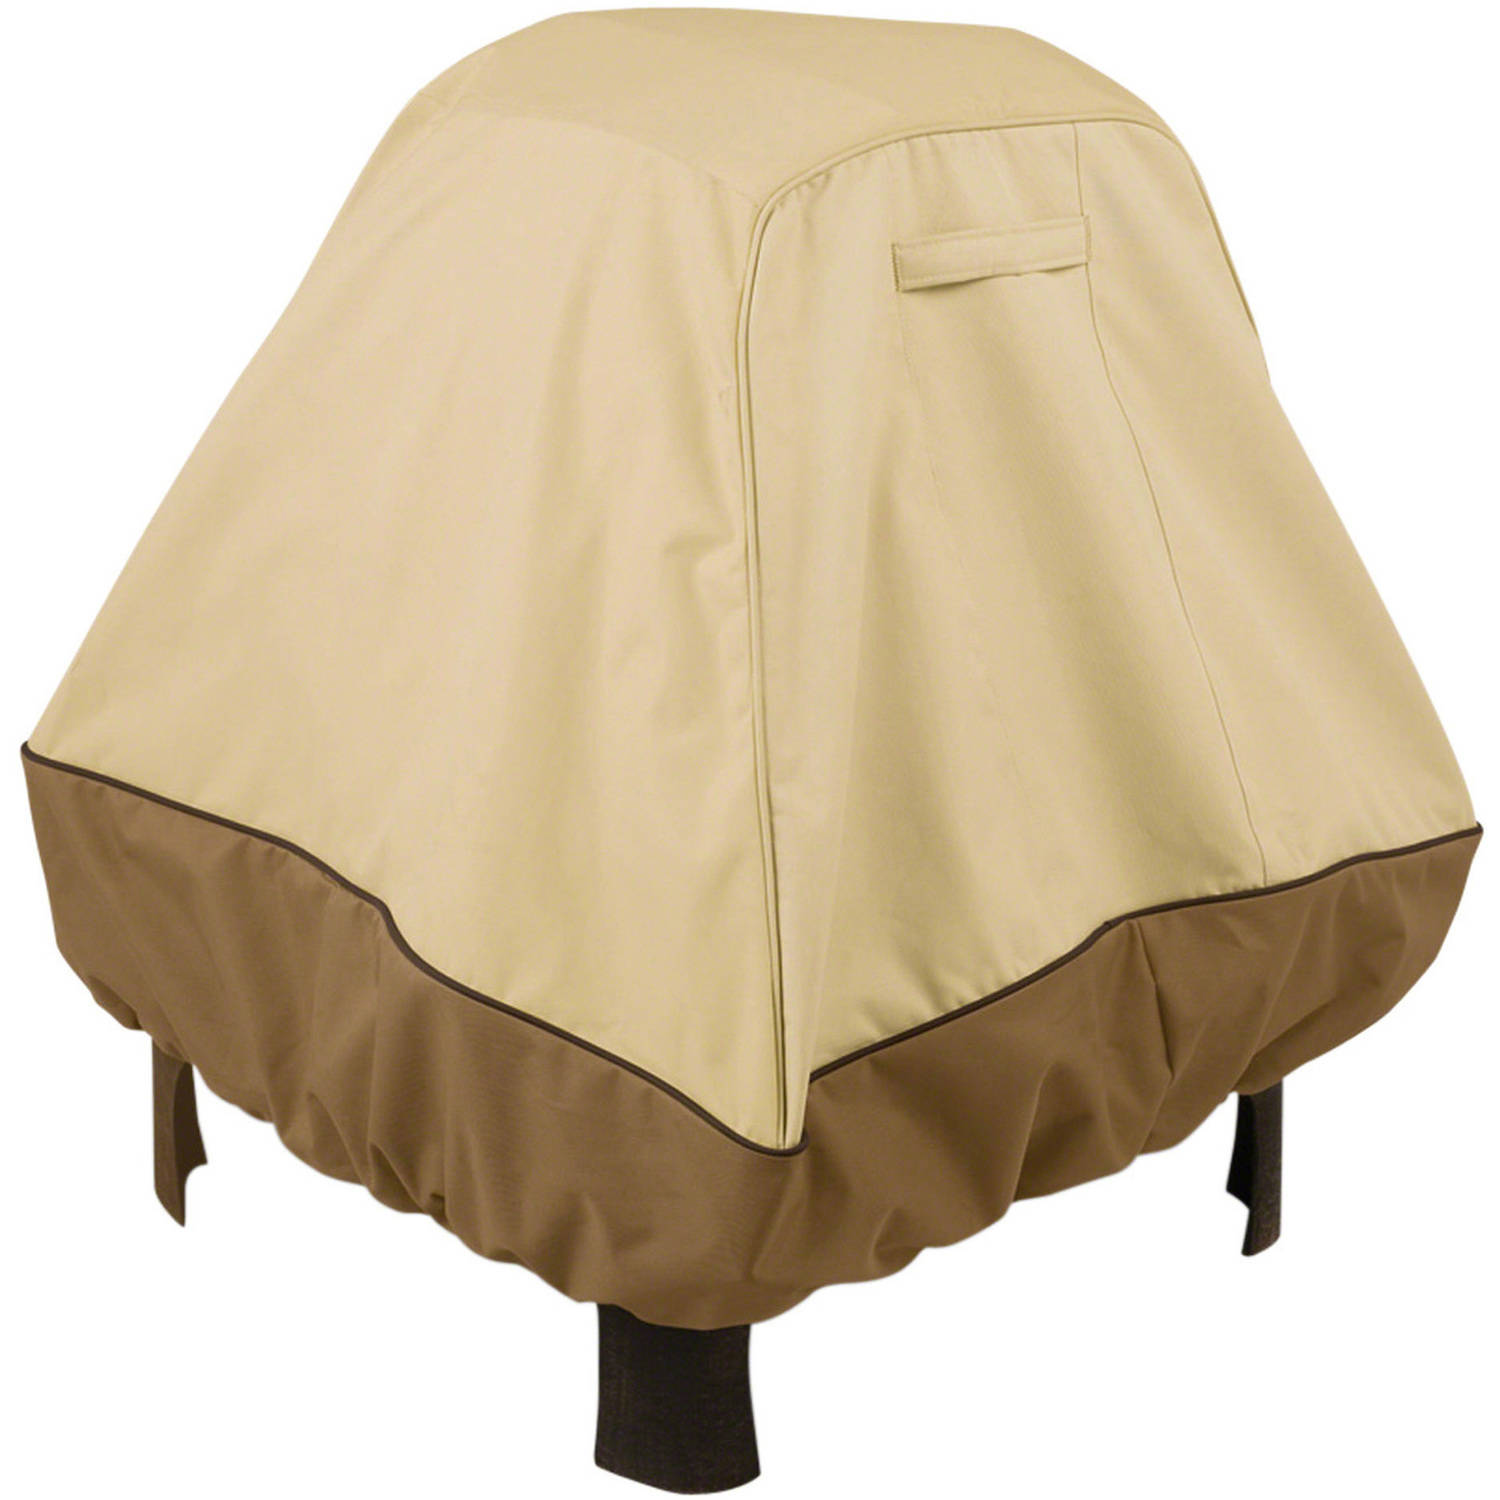 "Classic Accessories Veranda Stand-Up Fire Pit Patio Storage Cover, fits up to 35.5""L x 35.5""W"